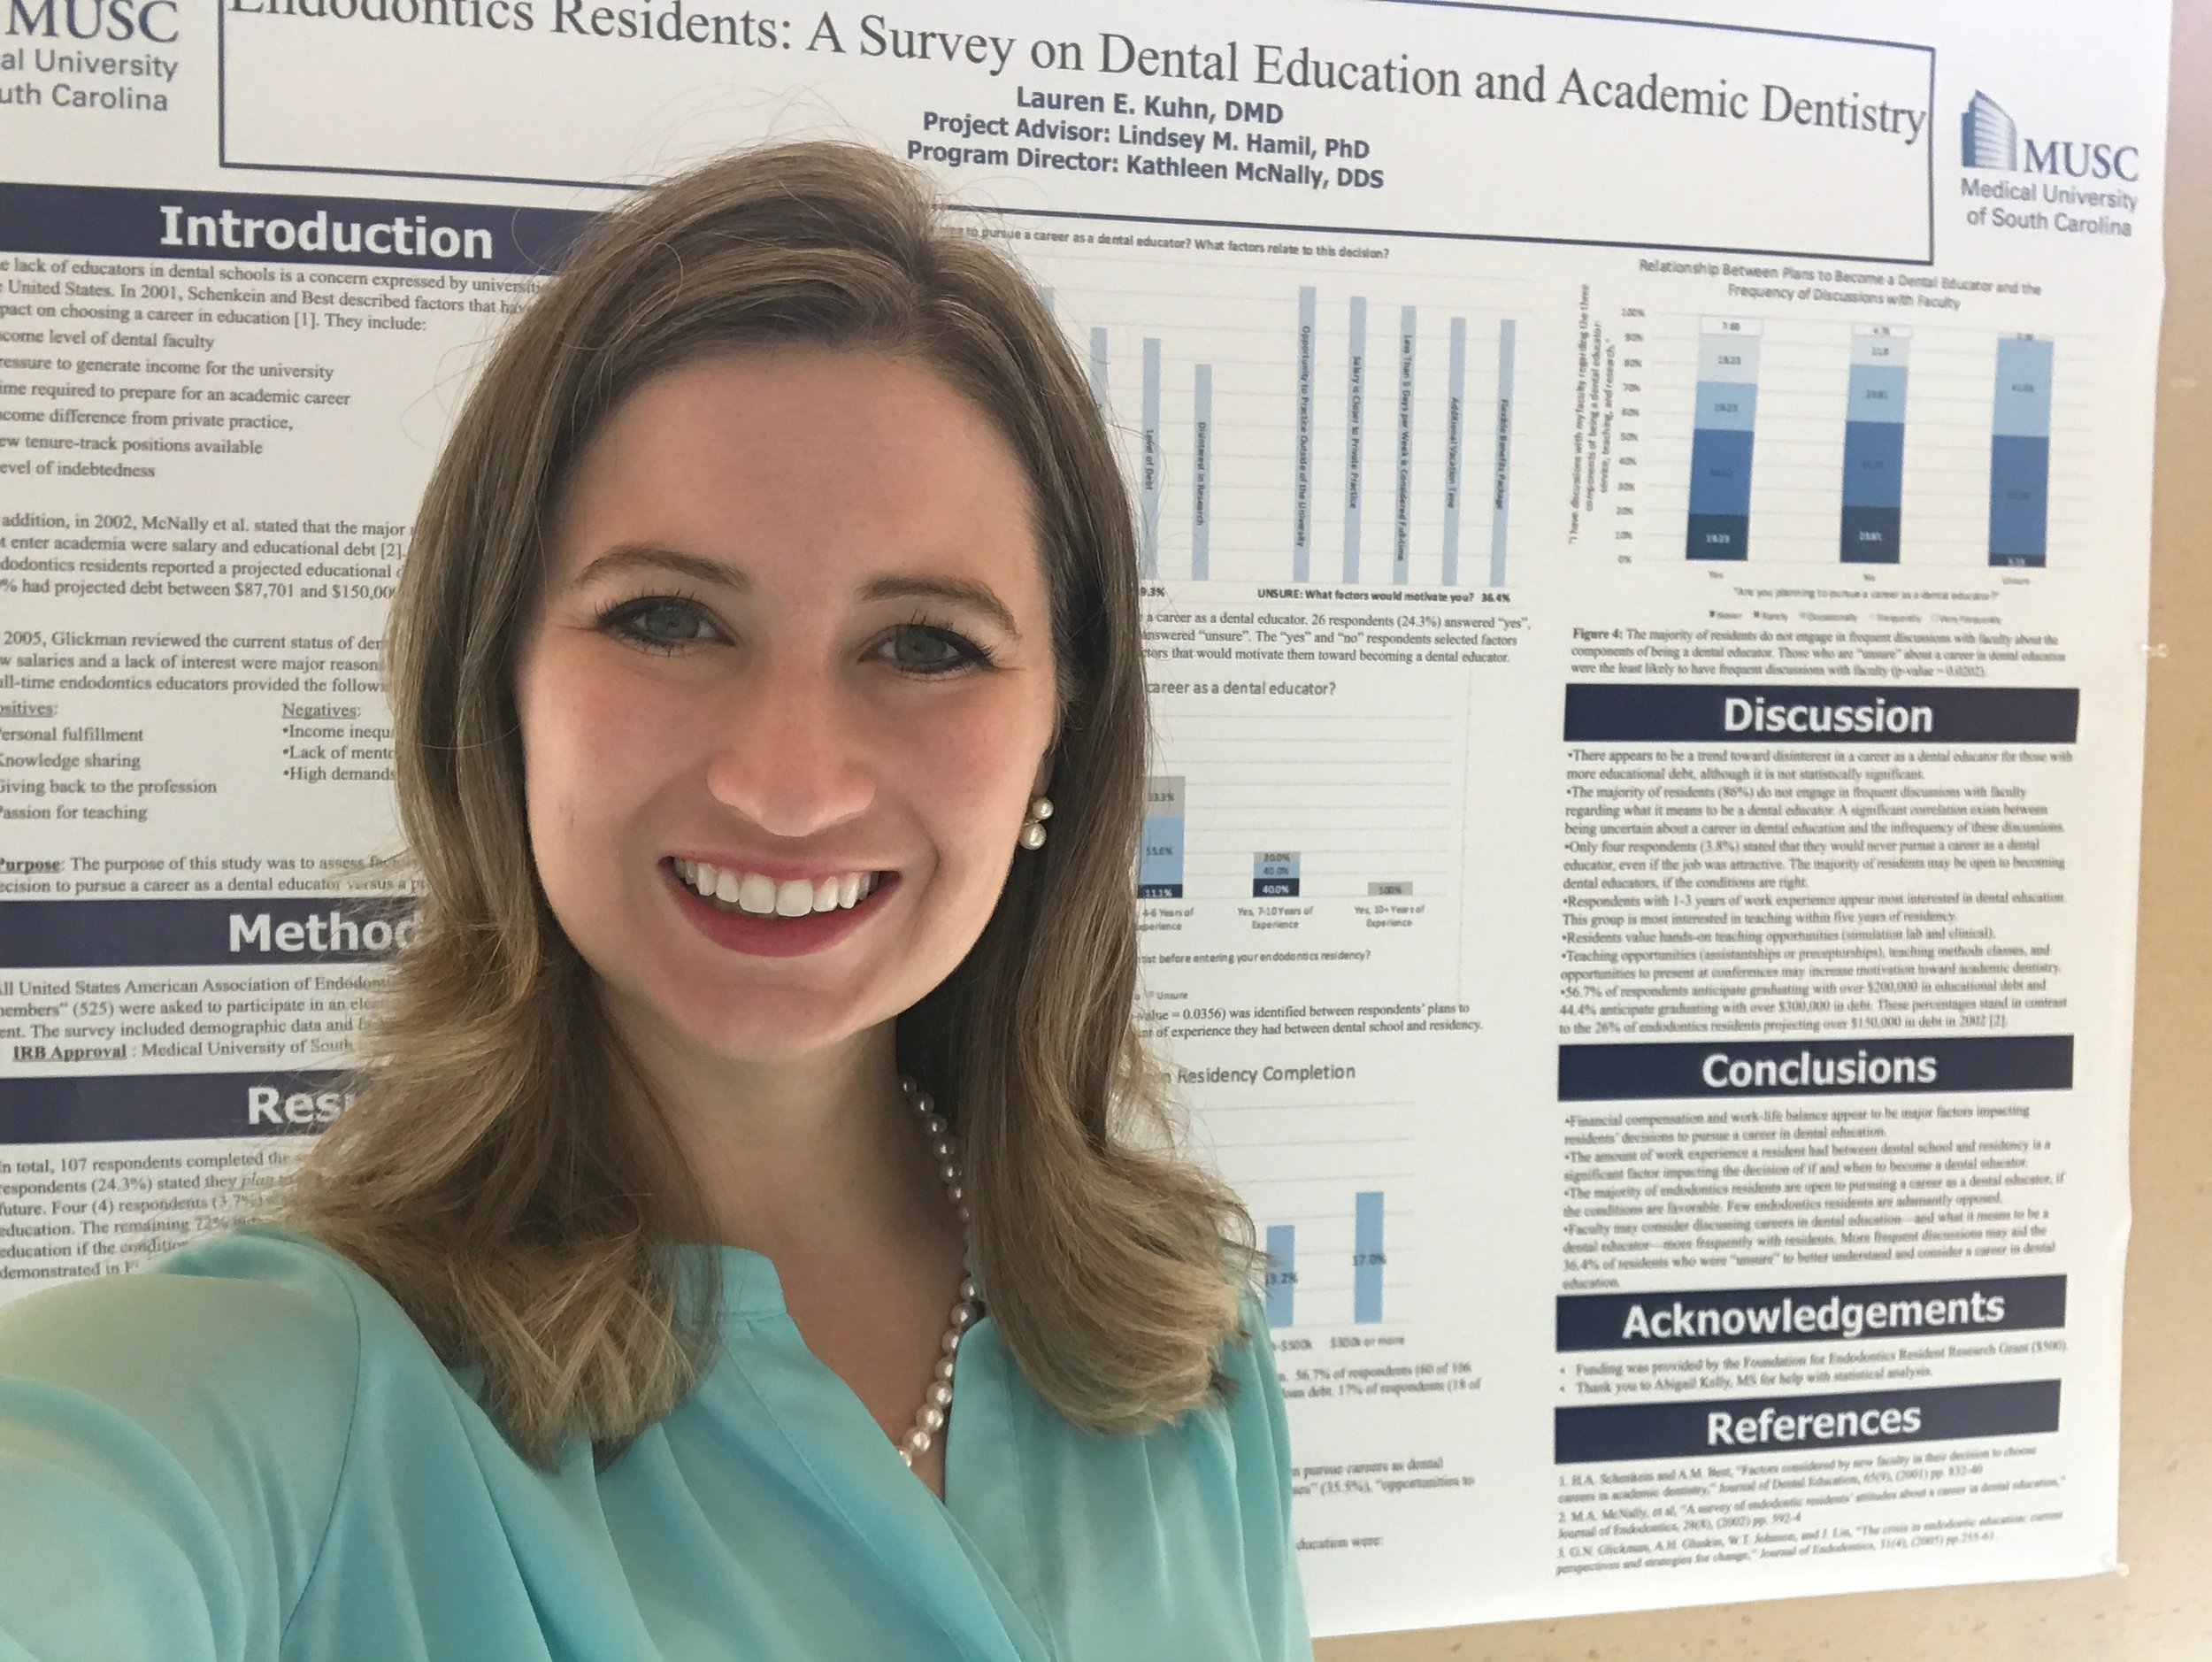 THESIS PROJECT - In August 2019, Dr. Kuhn received her M.S.D. from the Medical University of South Carolina.  Her research was on the factors that impact whether endodontics residents pursue careers in academia and dental education. Multiple significant findings were identified.Presentation of Findings:MUSC Scholars Day — February 28th, 2019AAE Annual Meeting in Montreal, Quebec, Canada — April 11th, 2019